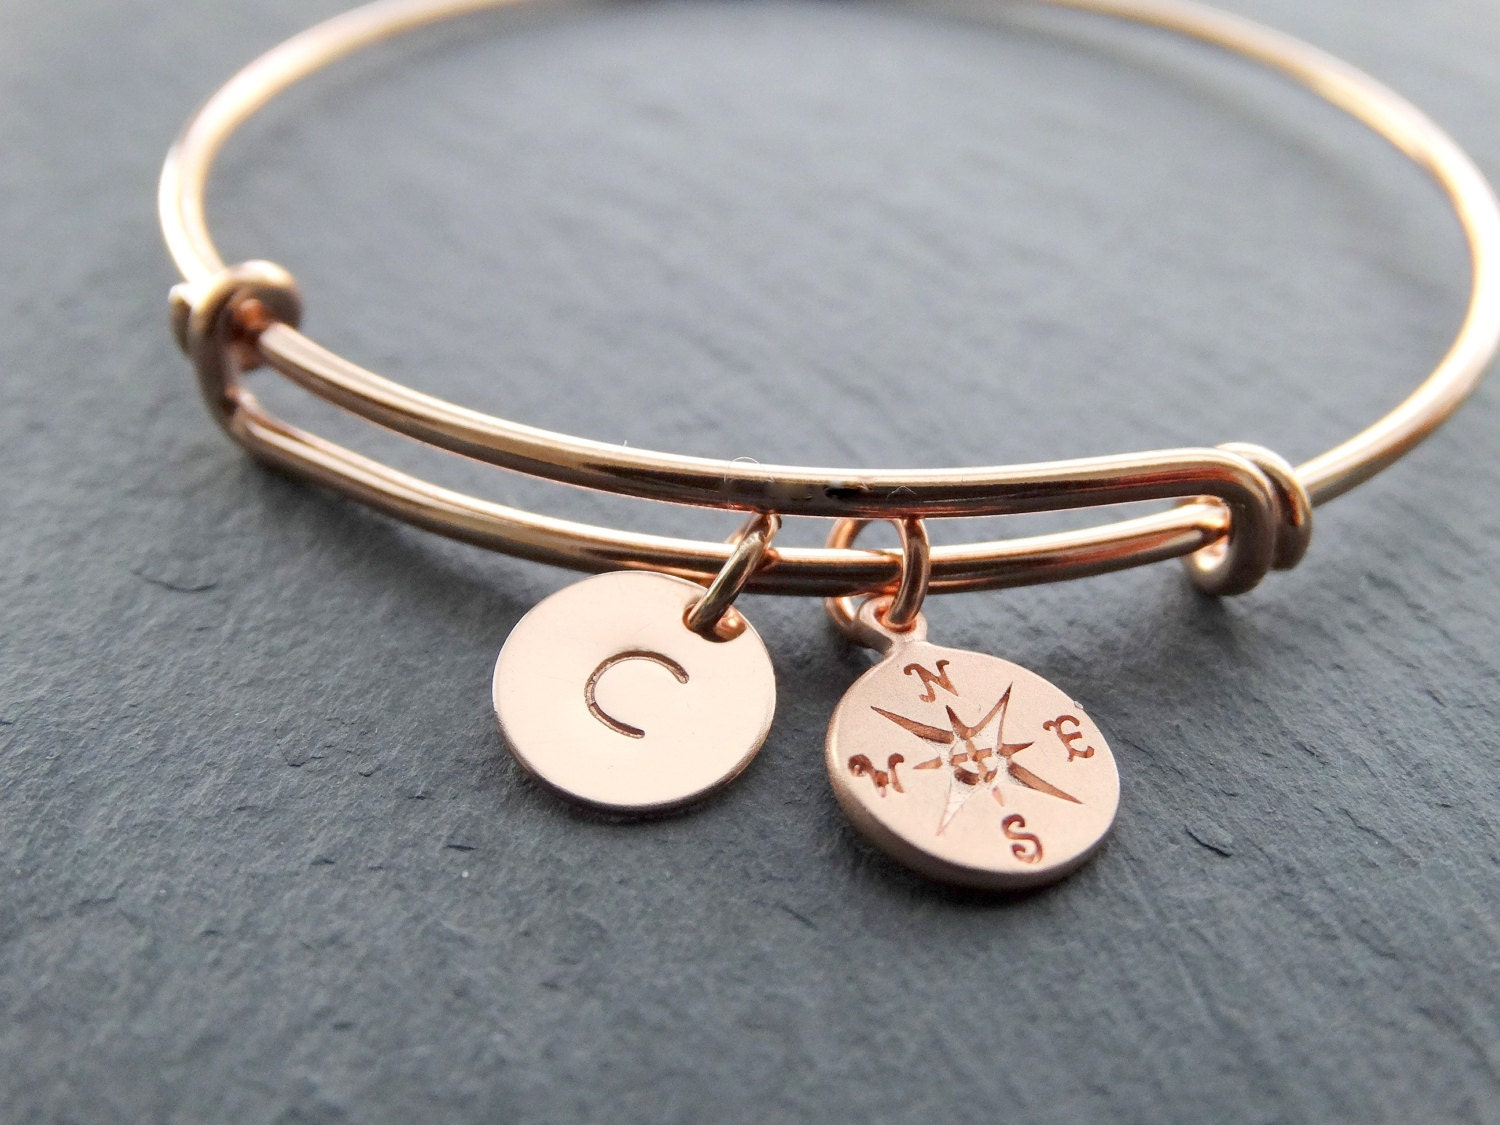 gold bracelet pink product lyst normal gallery logo jewelry charm fulton bangle kors braceletrose rose bangles goldtone michael